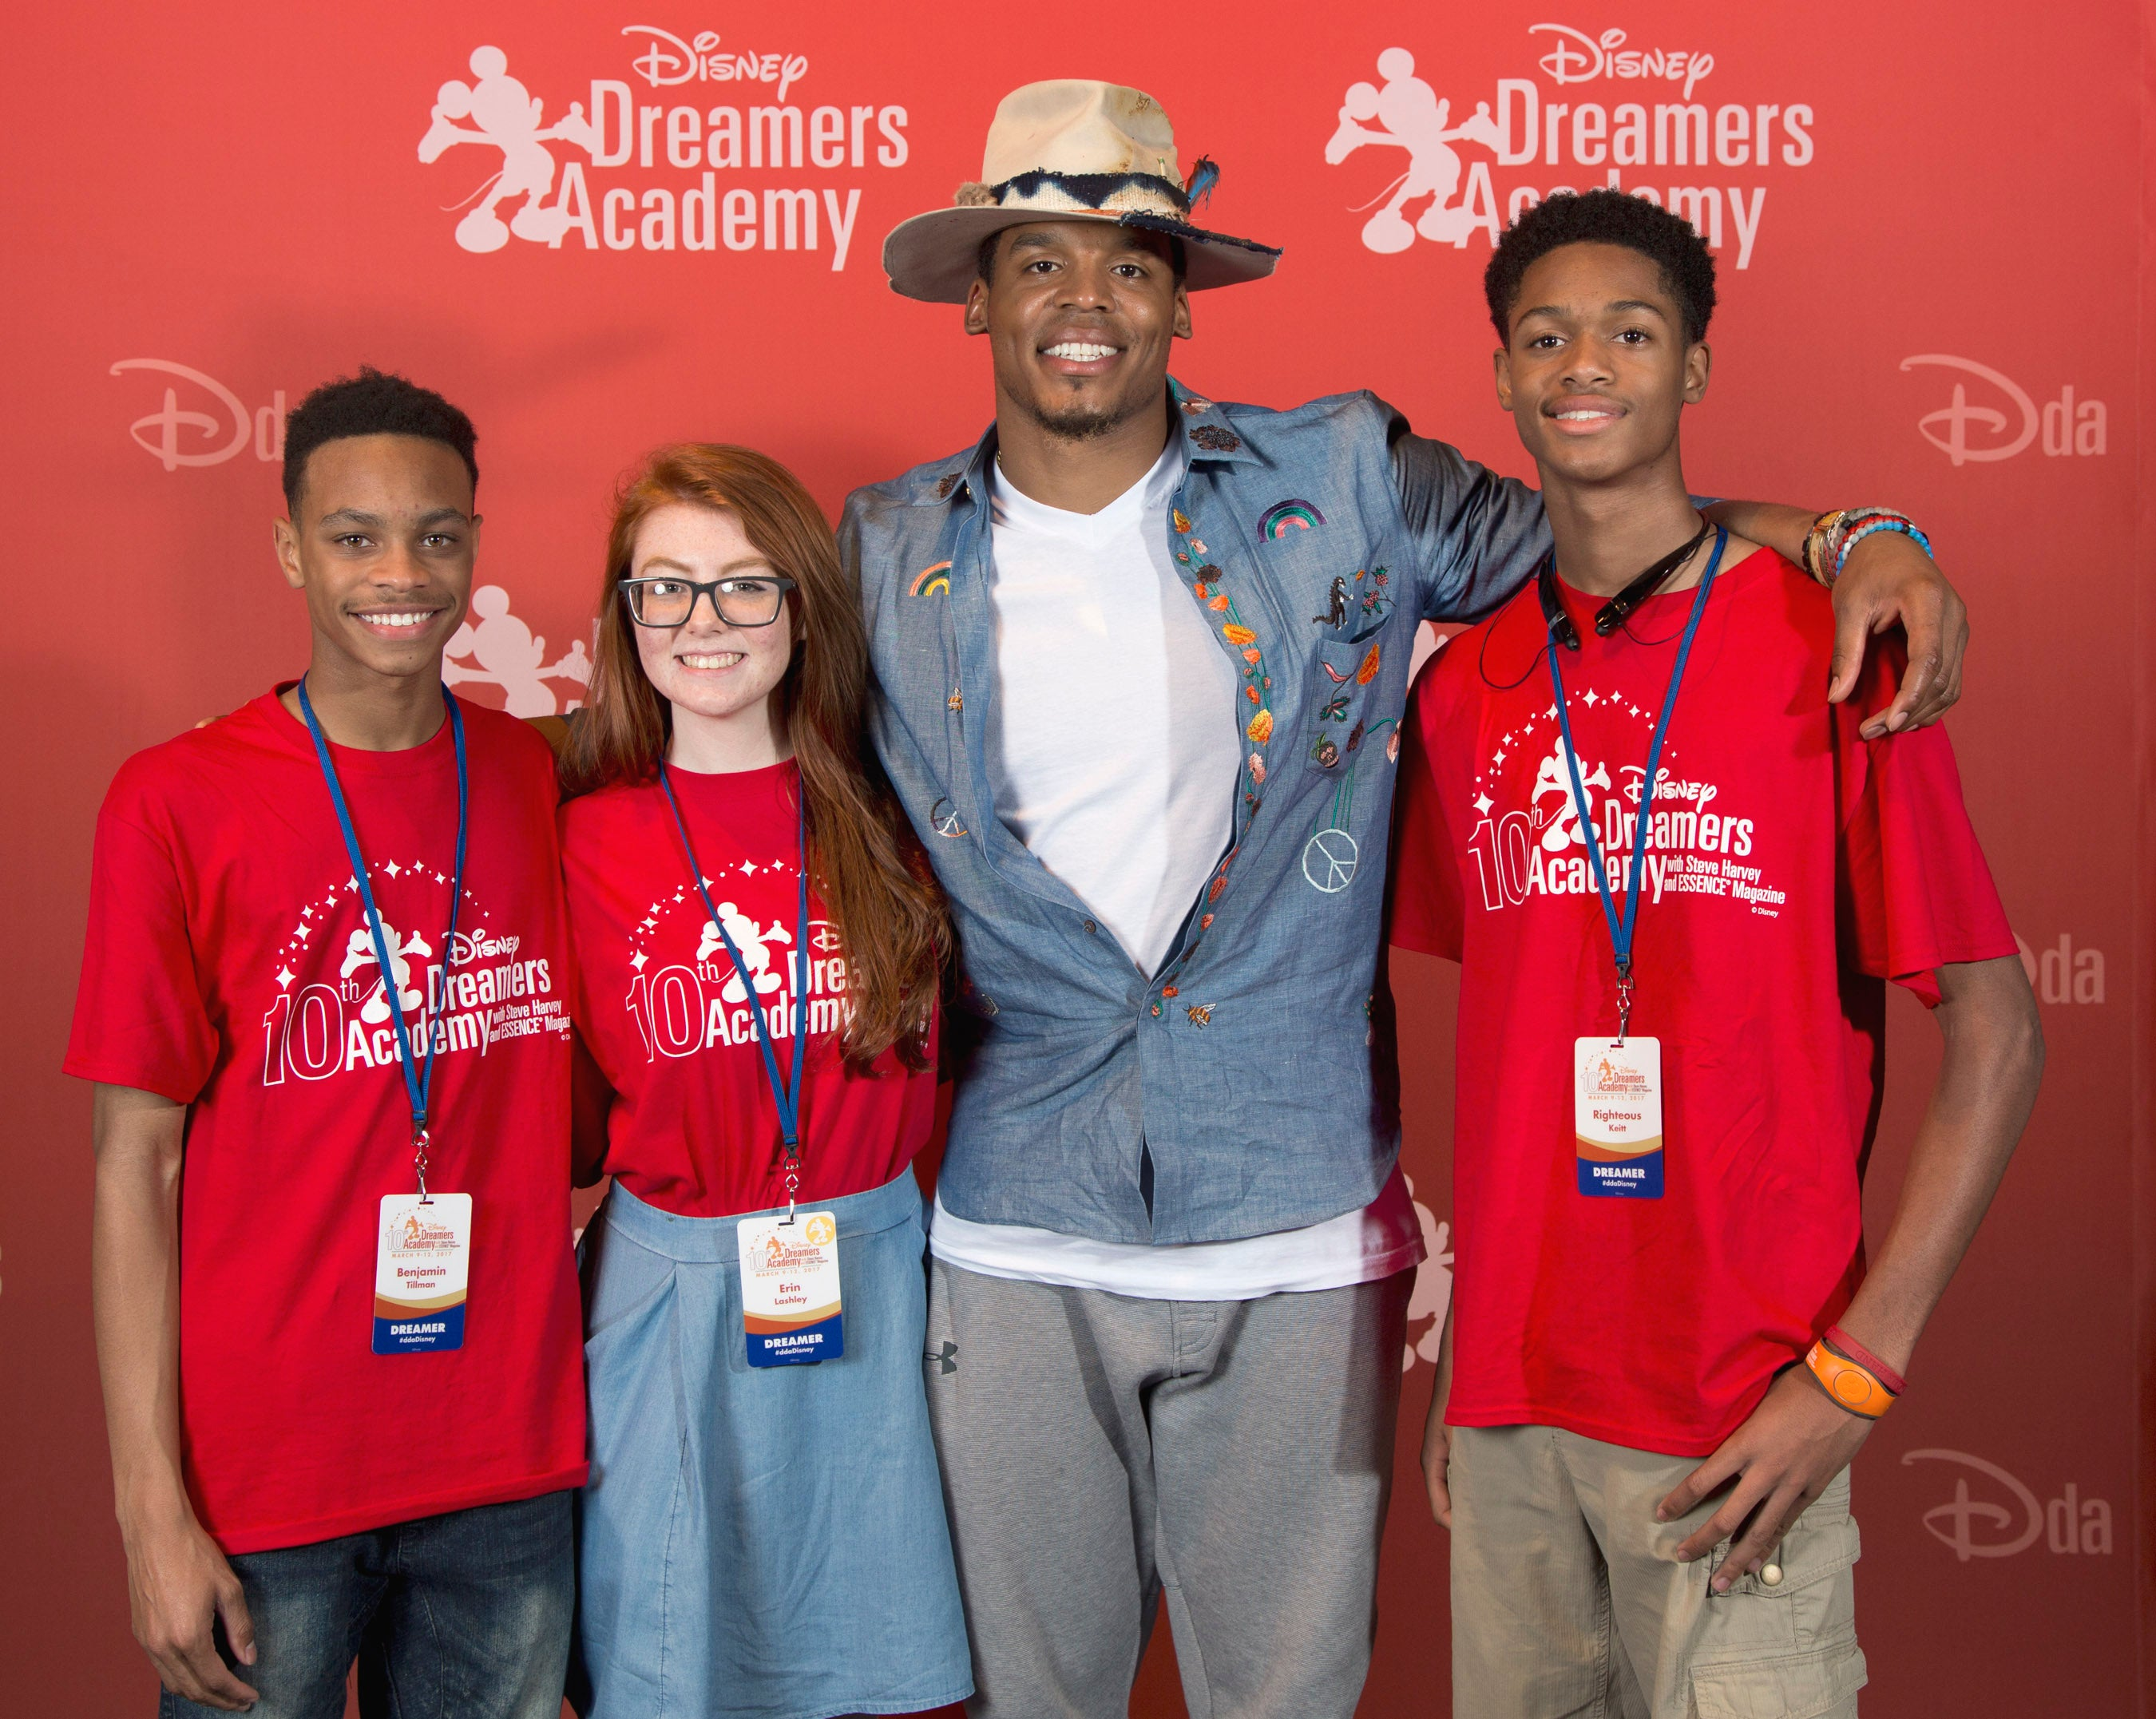 The Best Moments From the 10th Annual Disney Dreamers Academy With Steve Harvey